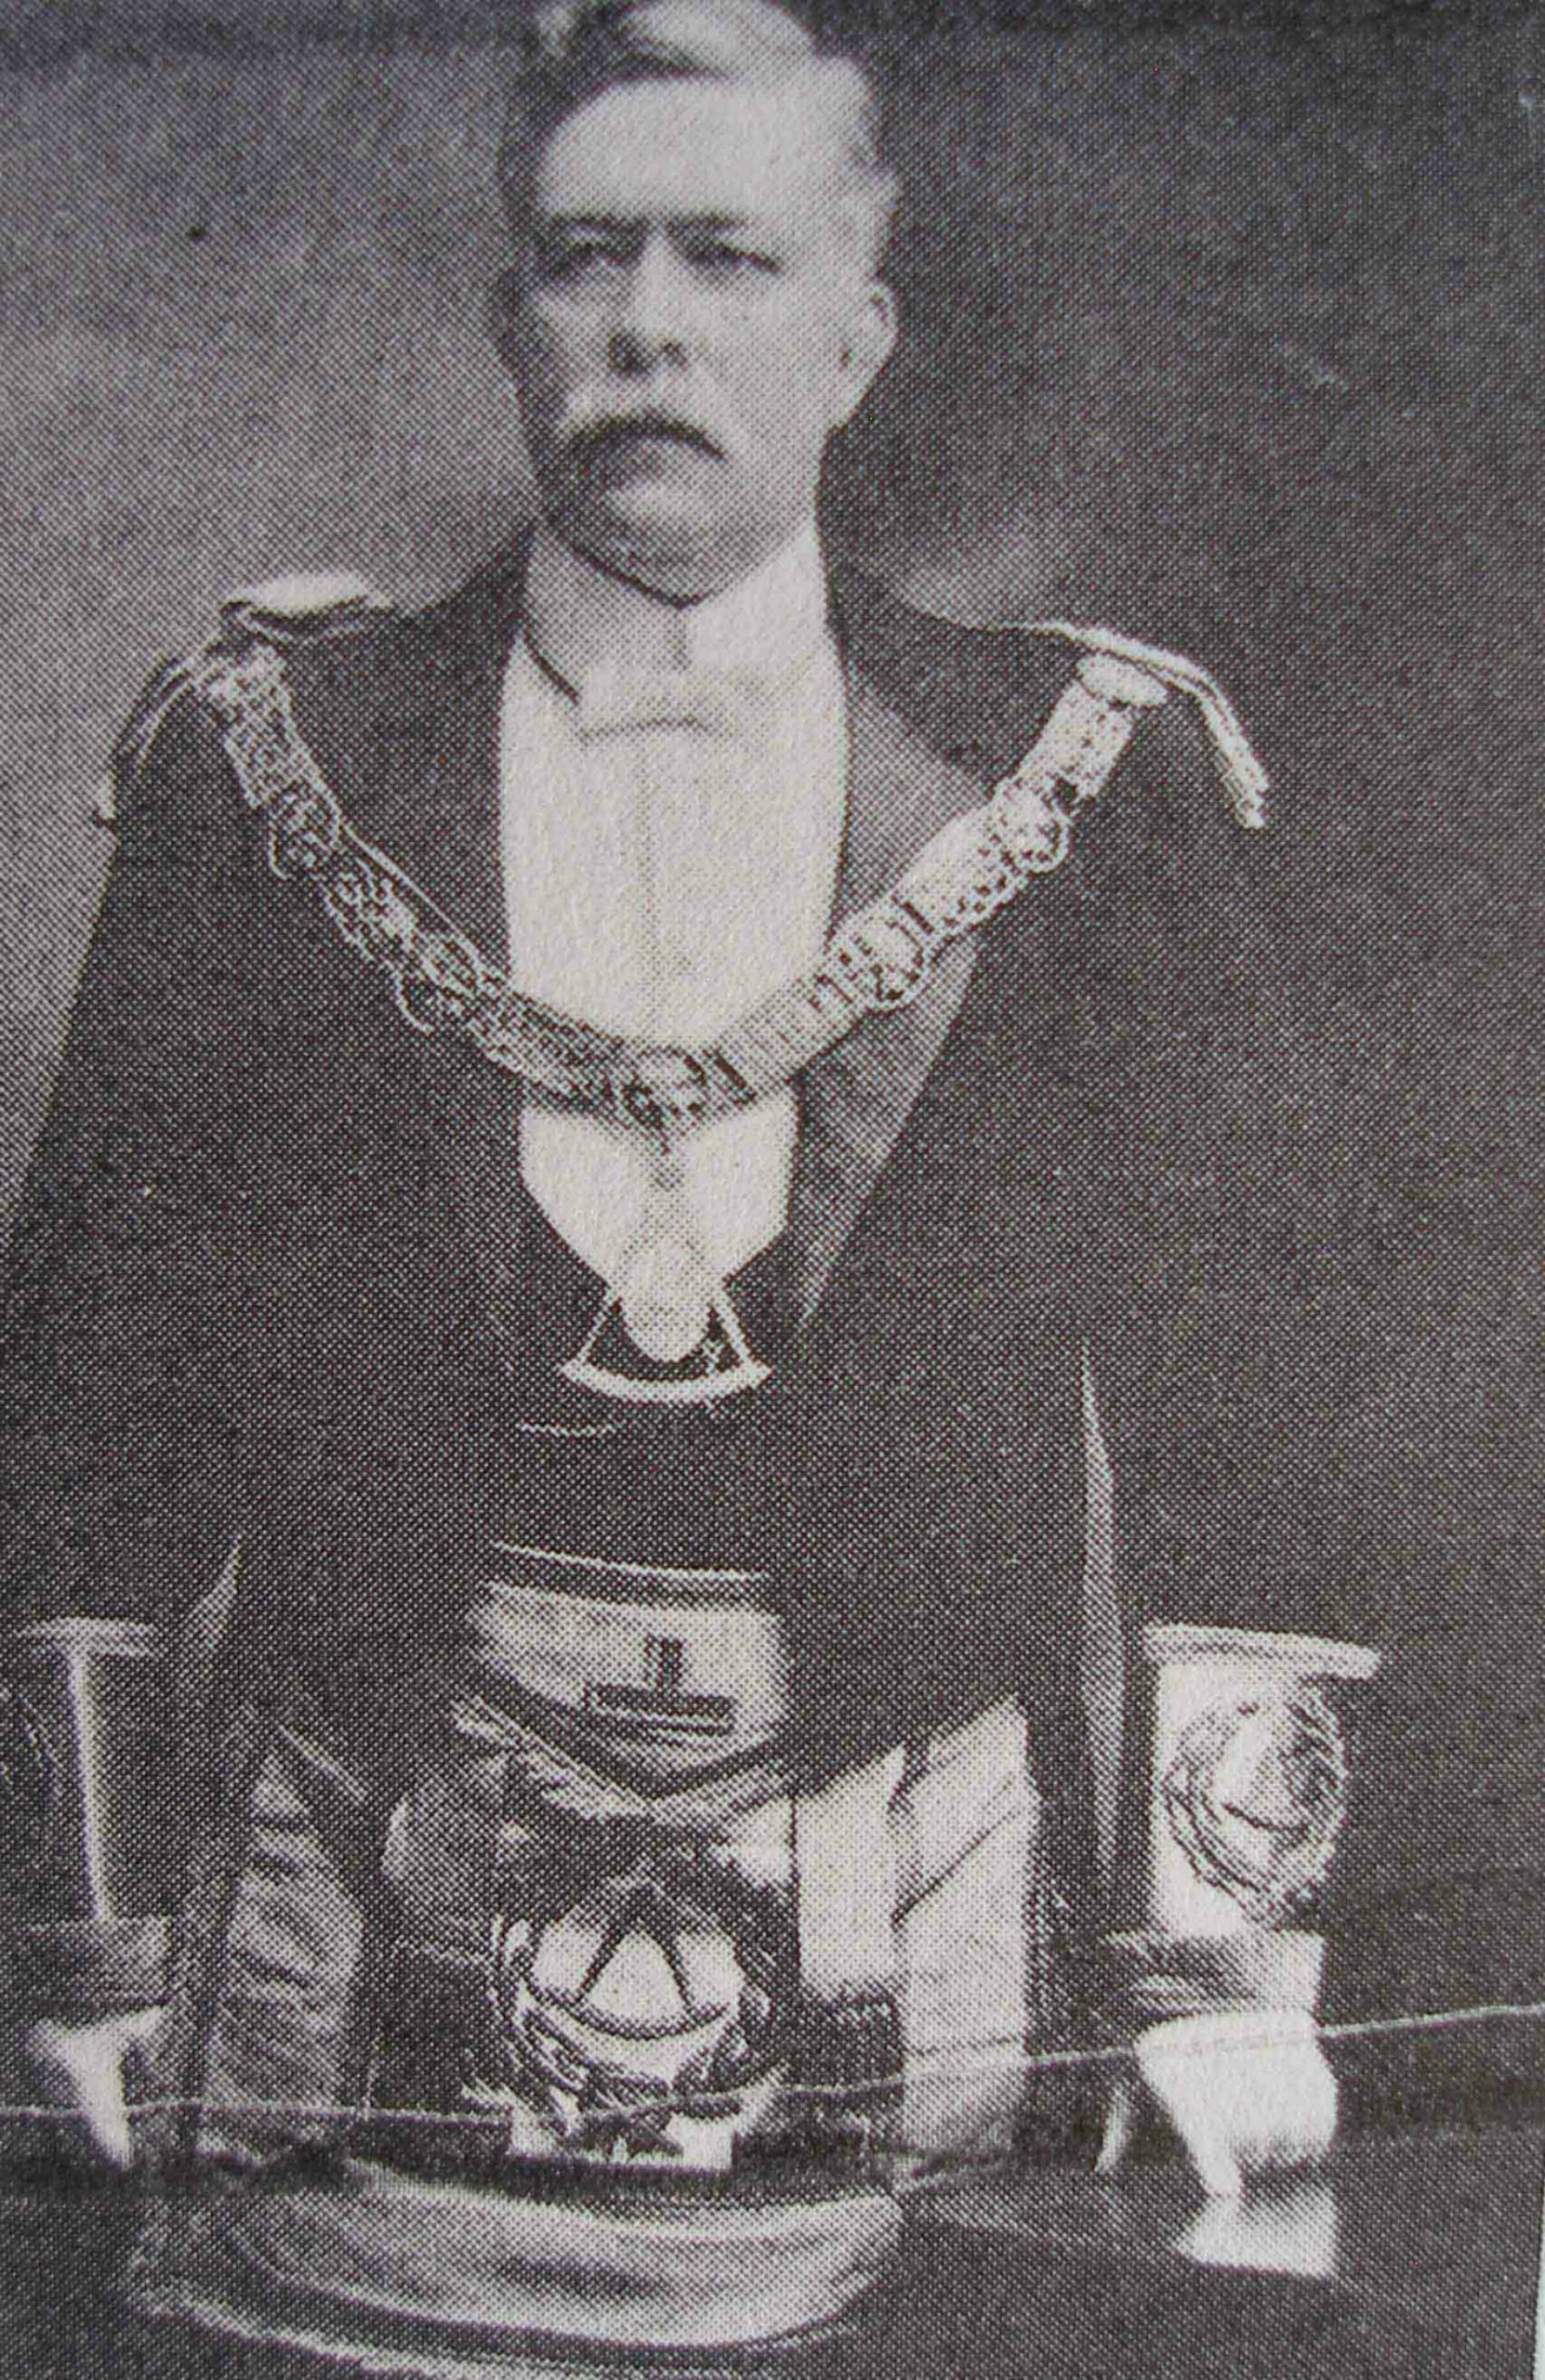 William Kyle Houston as Grand Master of B.C., circa 1908